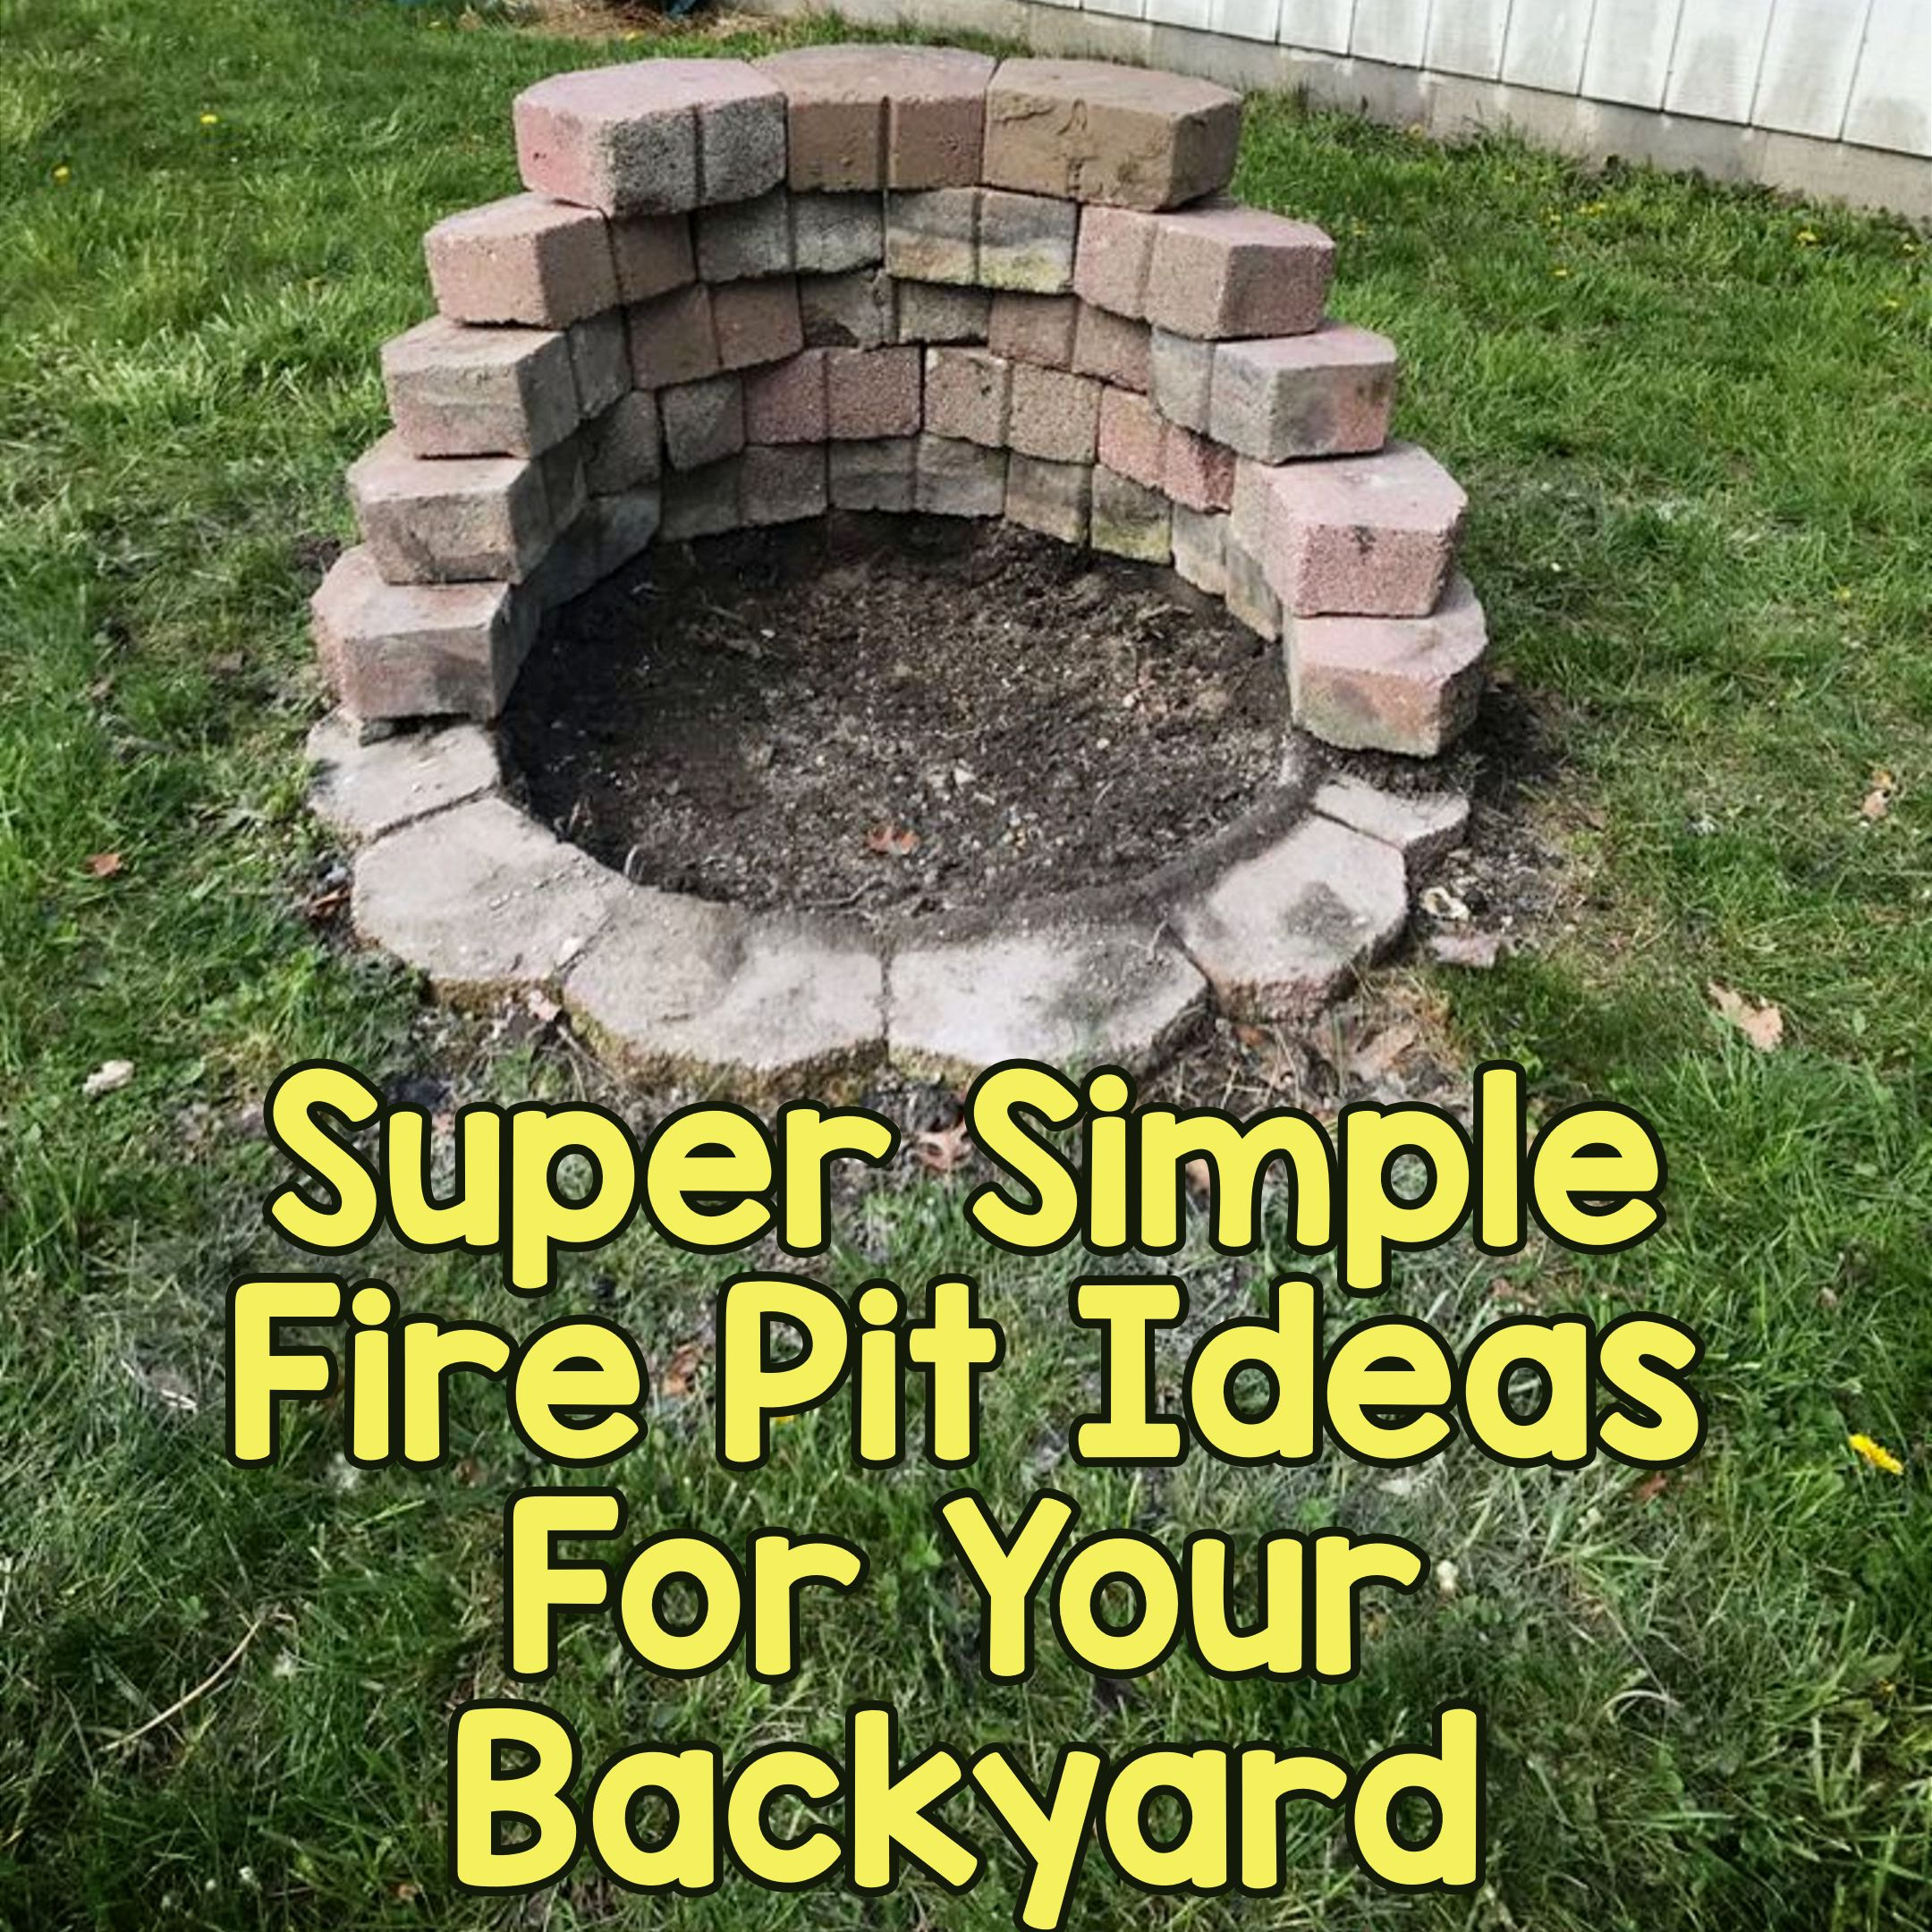 Super Simple Fire Pit Ideas For Your Backyard